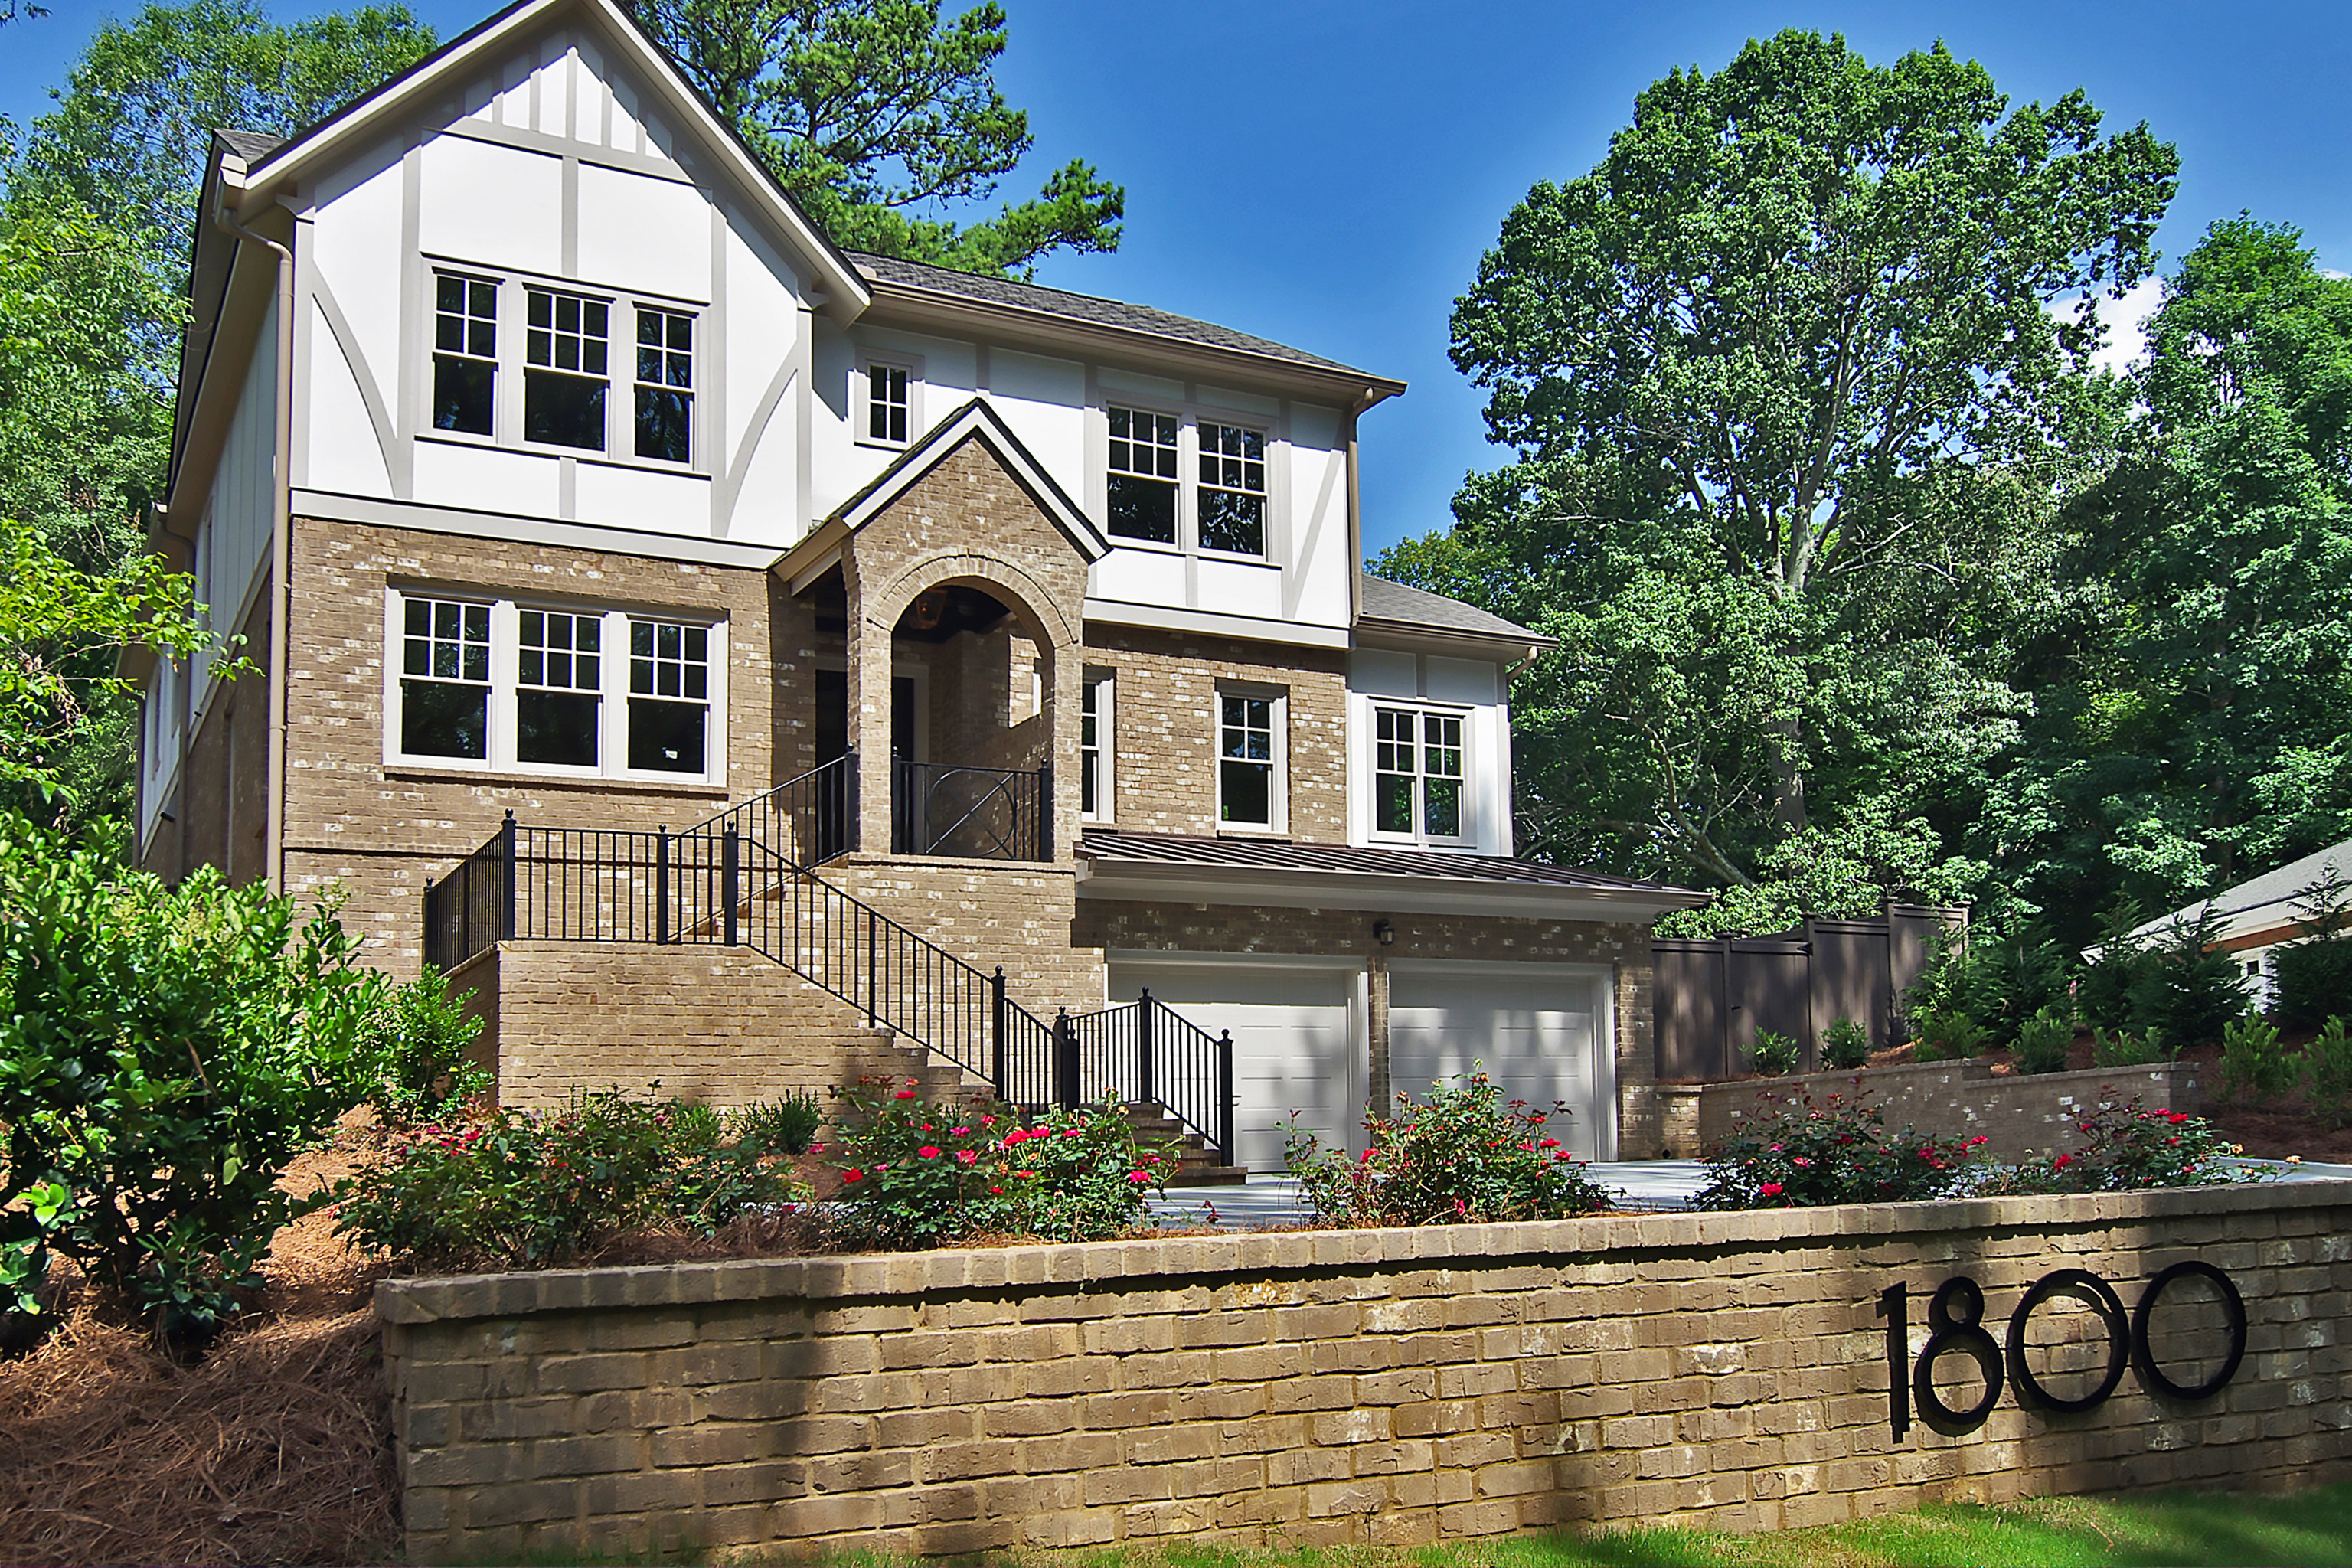 Single Family Home for Sale at Stunning 5/4/1 quality new construction in Morningside by Phillip Pettis. 1800 Lenox Road Morningside, Atlanta, Georgia 30306 United States